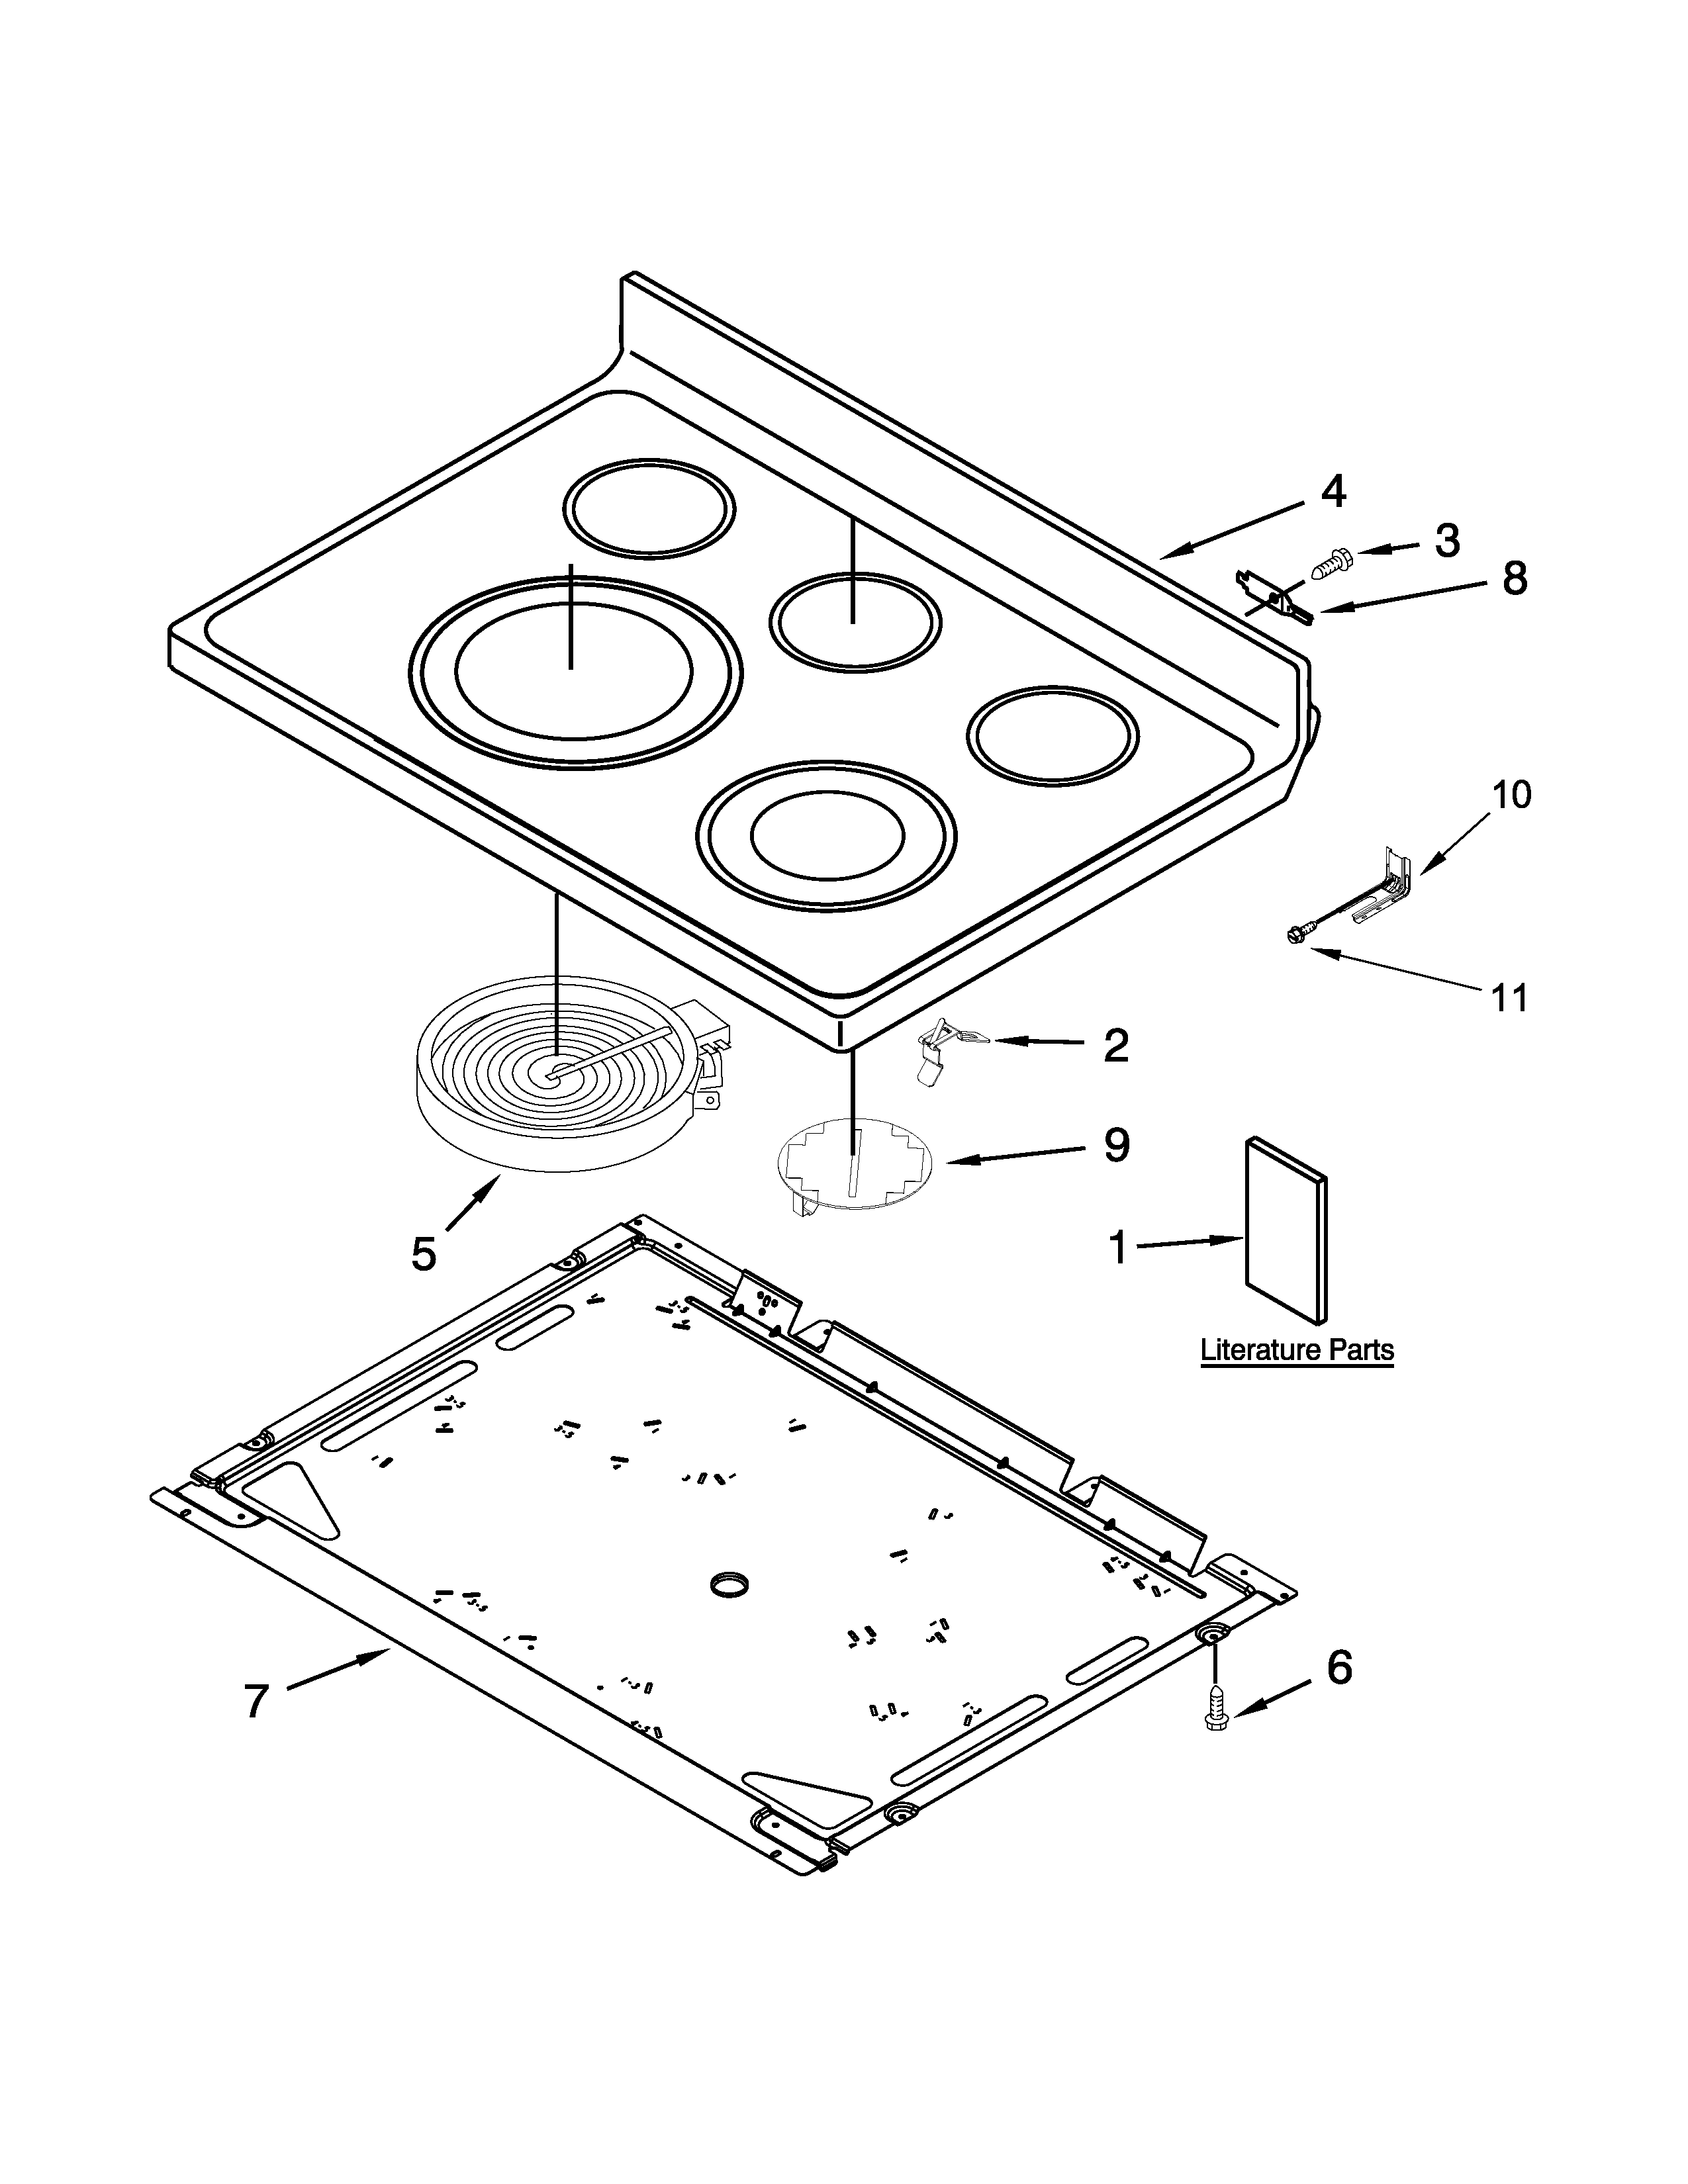 Whirlpool WFE710H0AS1 cooktop parts diagram